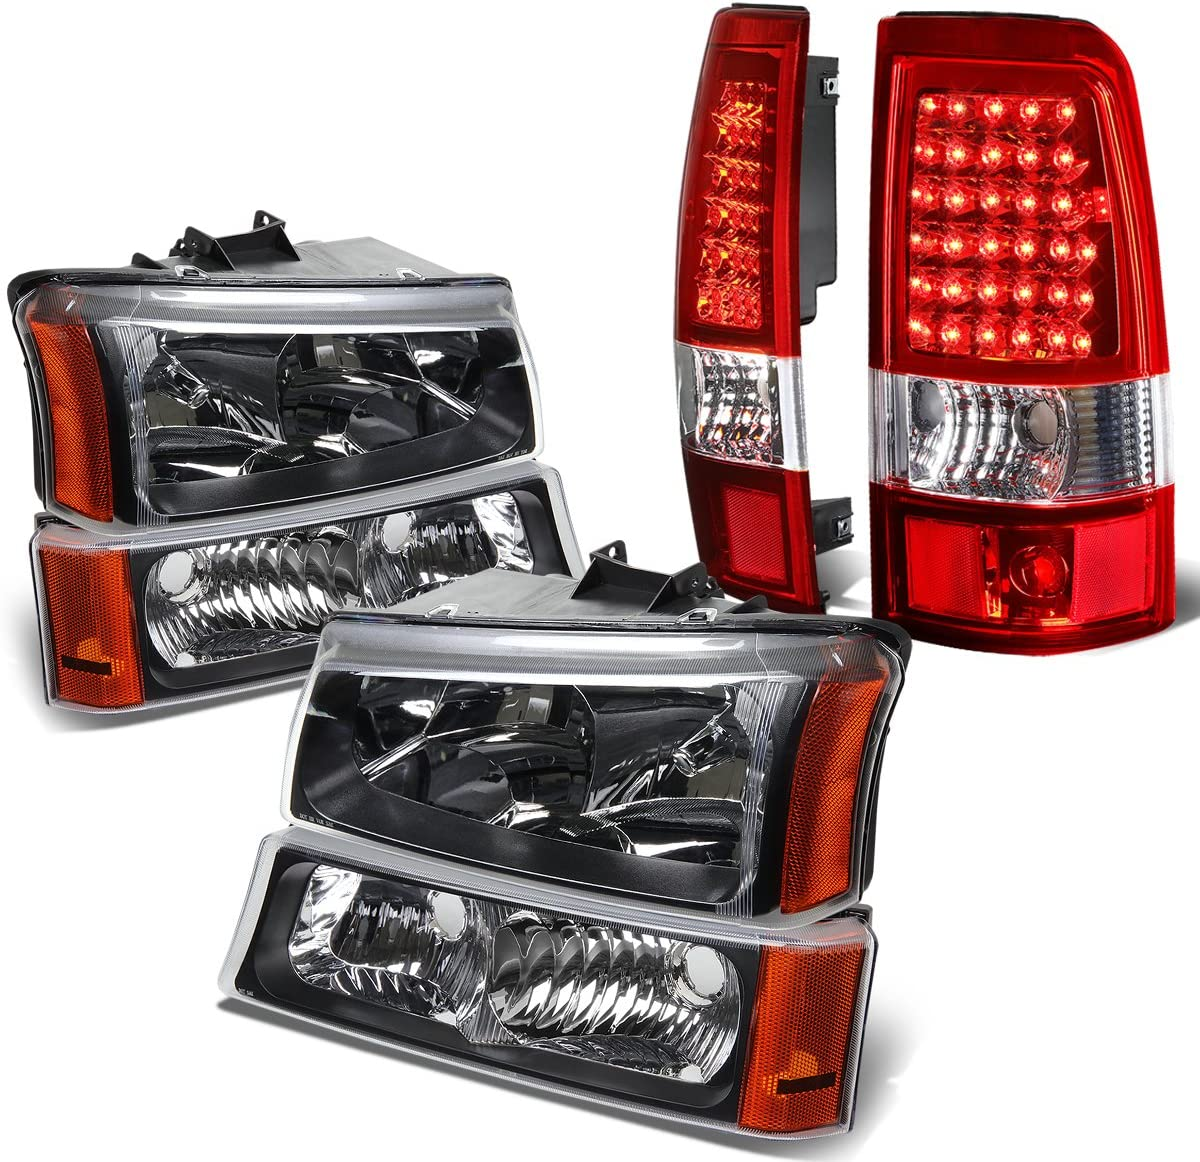 Replacement for Chevy Silverado 1st Gen 4pc Pair of Black Amber Corner Headlight + Chrome Red Lens LED Tail Light